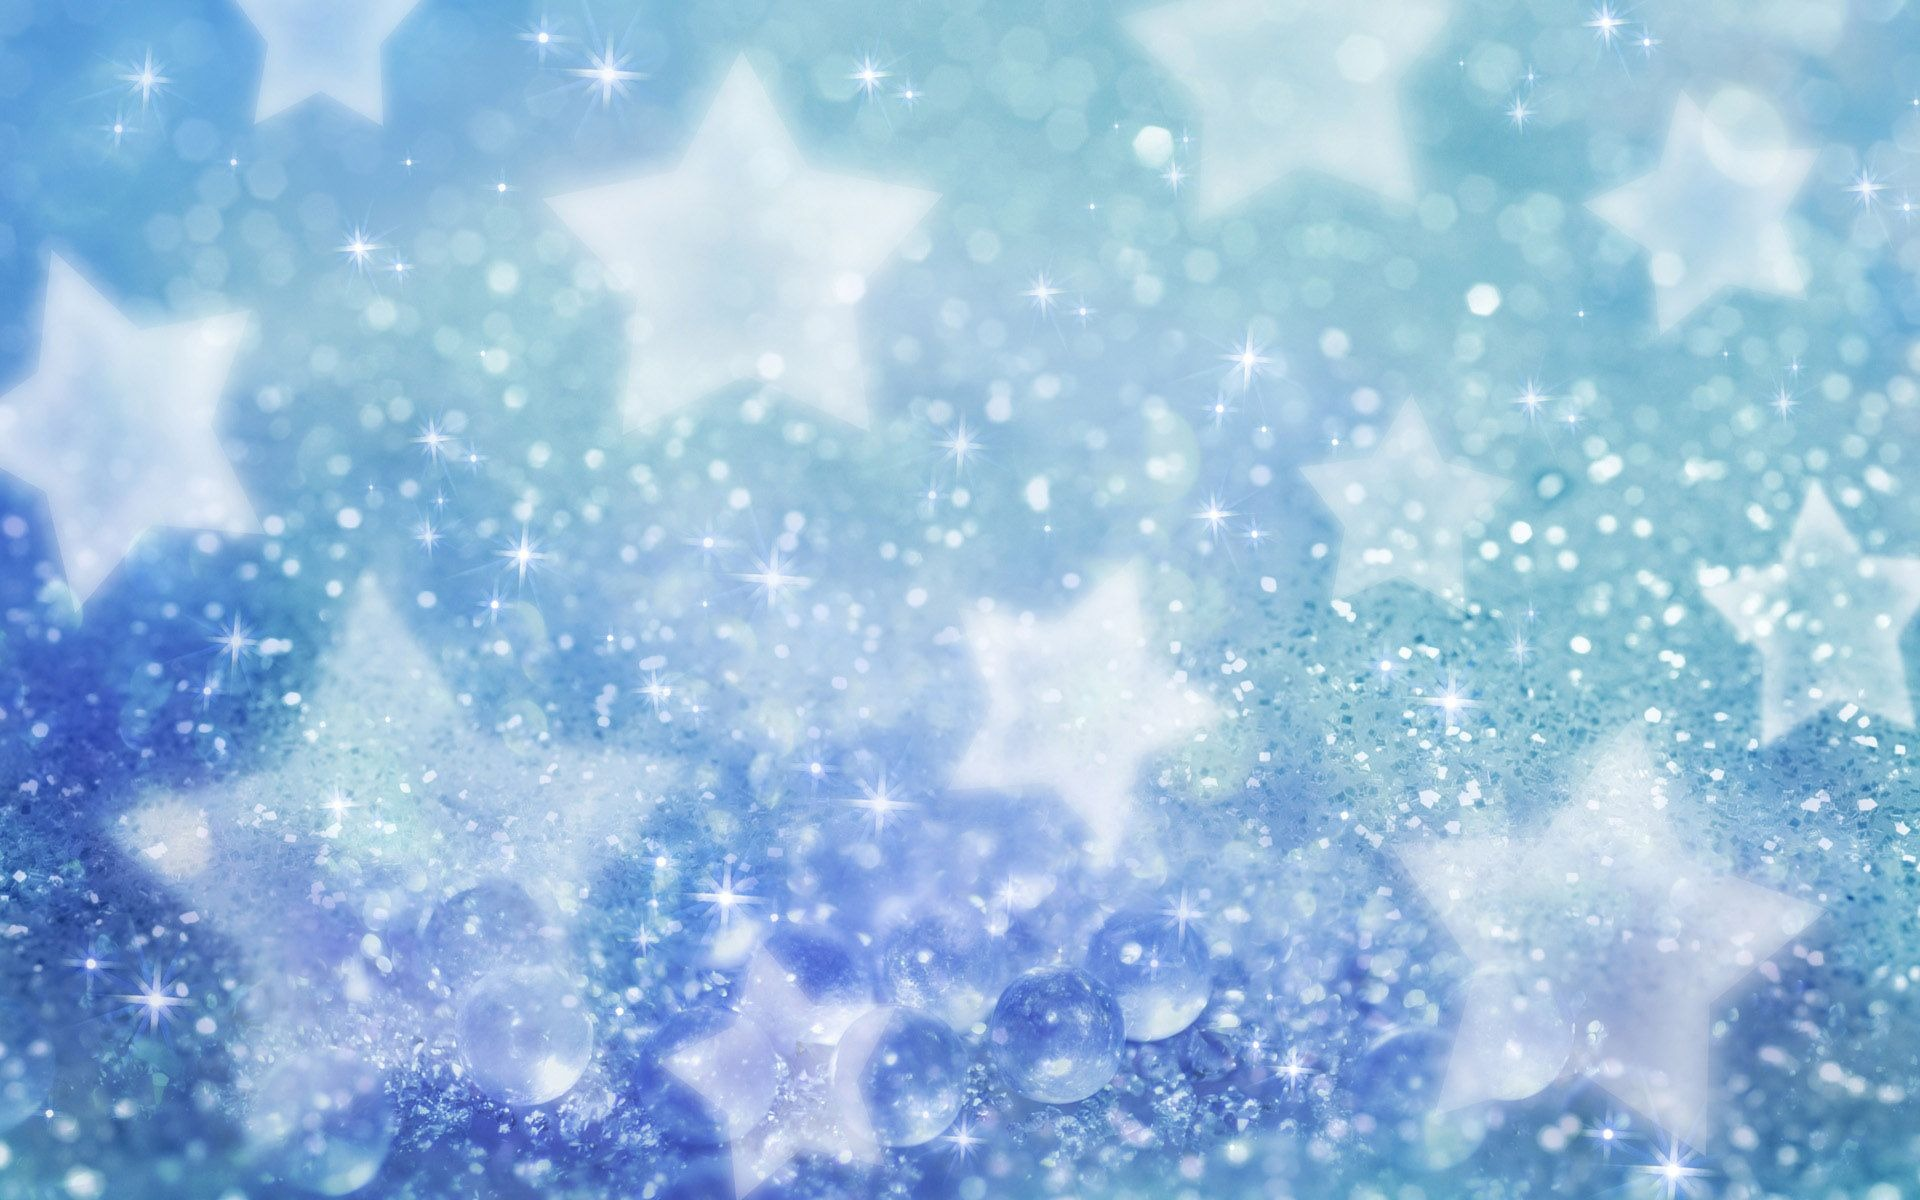 stars and diamonds wallpaper abstract other wallpapers in jpg